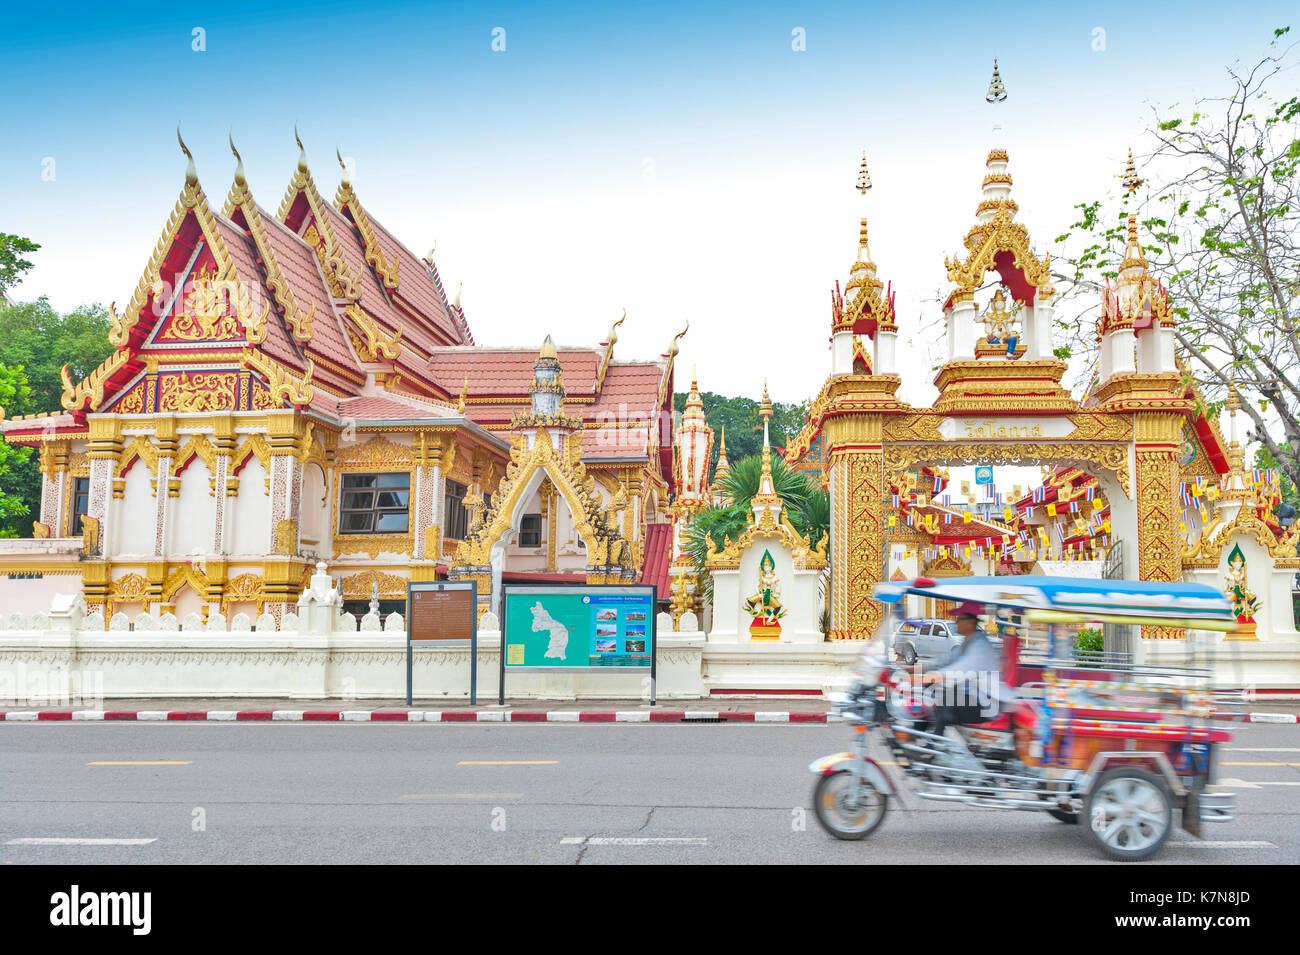 Wat Okat Si Bua Ban, old sacred temple houses two revered Buddha images, Phra Tio and Phra Thiam in the city of Nakhon Phanom Province, Thailand - Stock Image